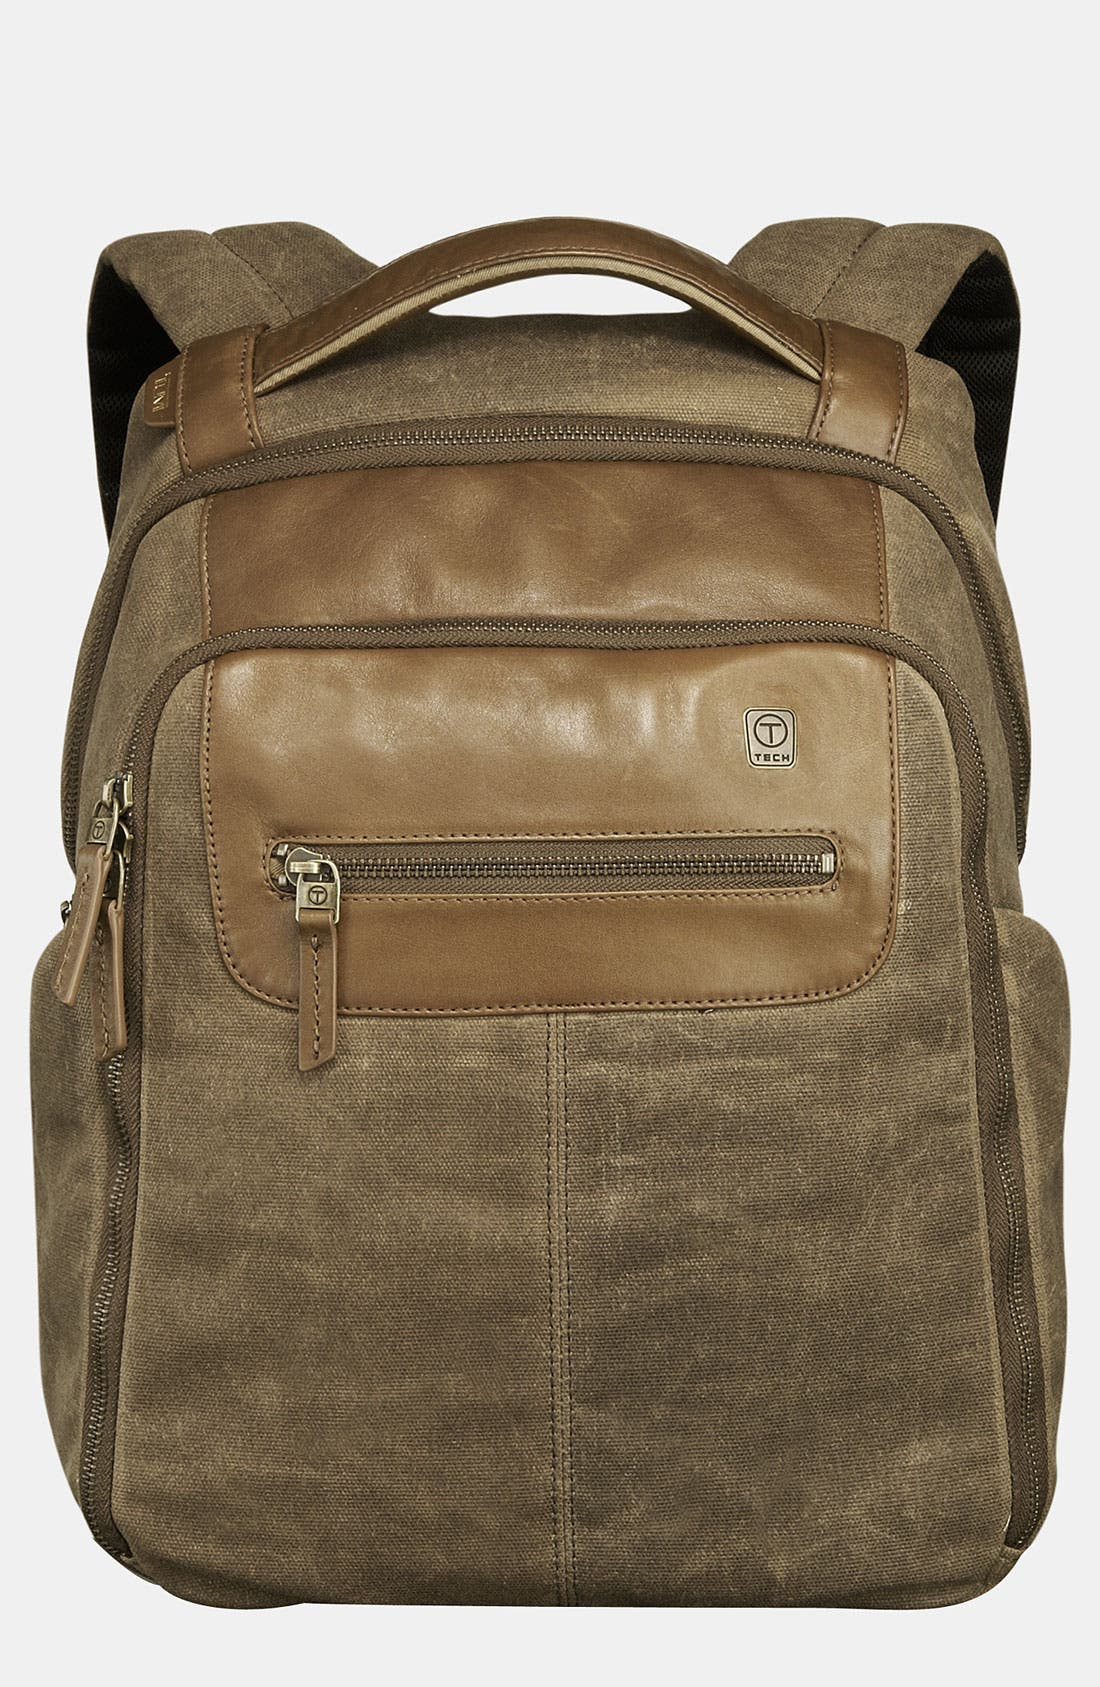 Alternate Image 1 Selected - T-Tech by Tumi 'Forge - Steel City' Slim Backpack